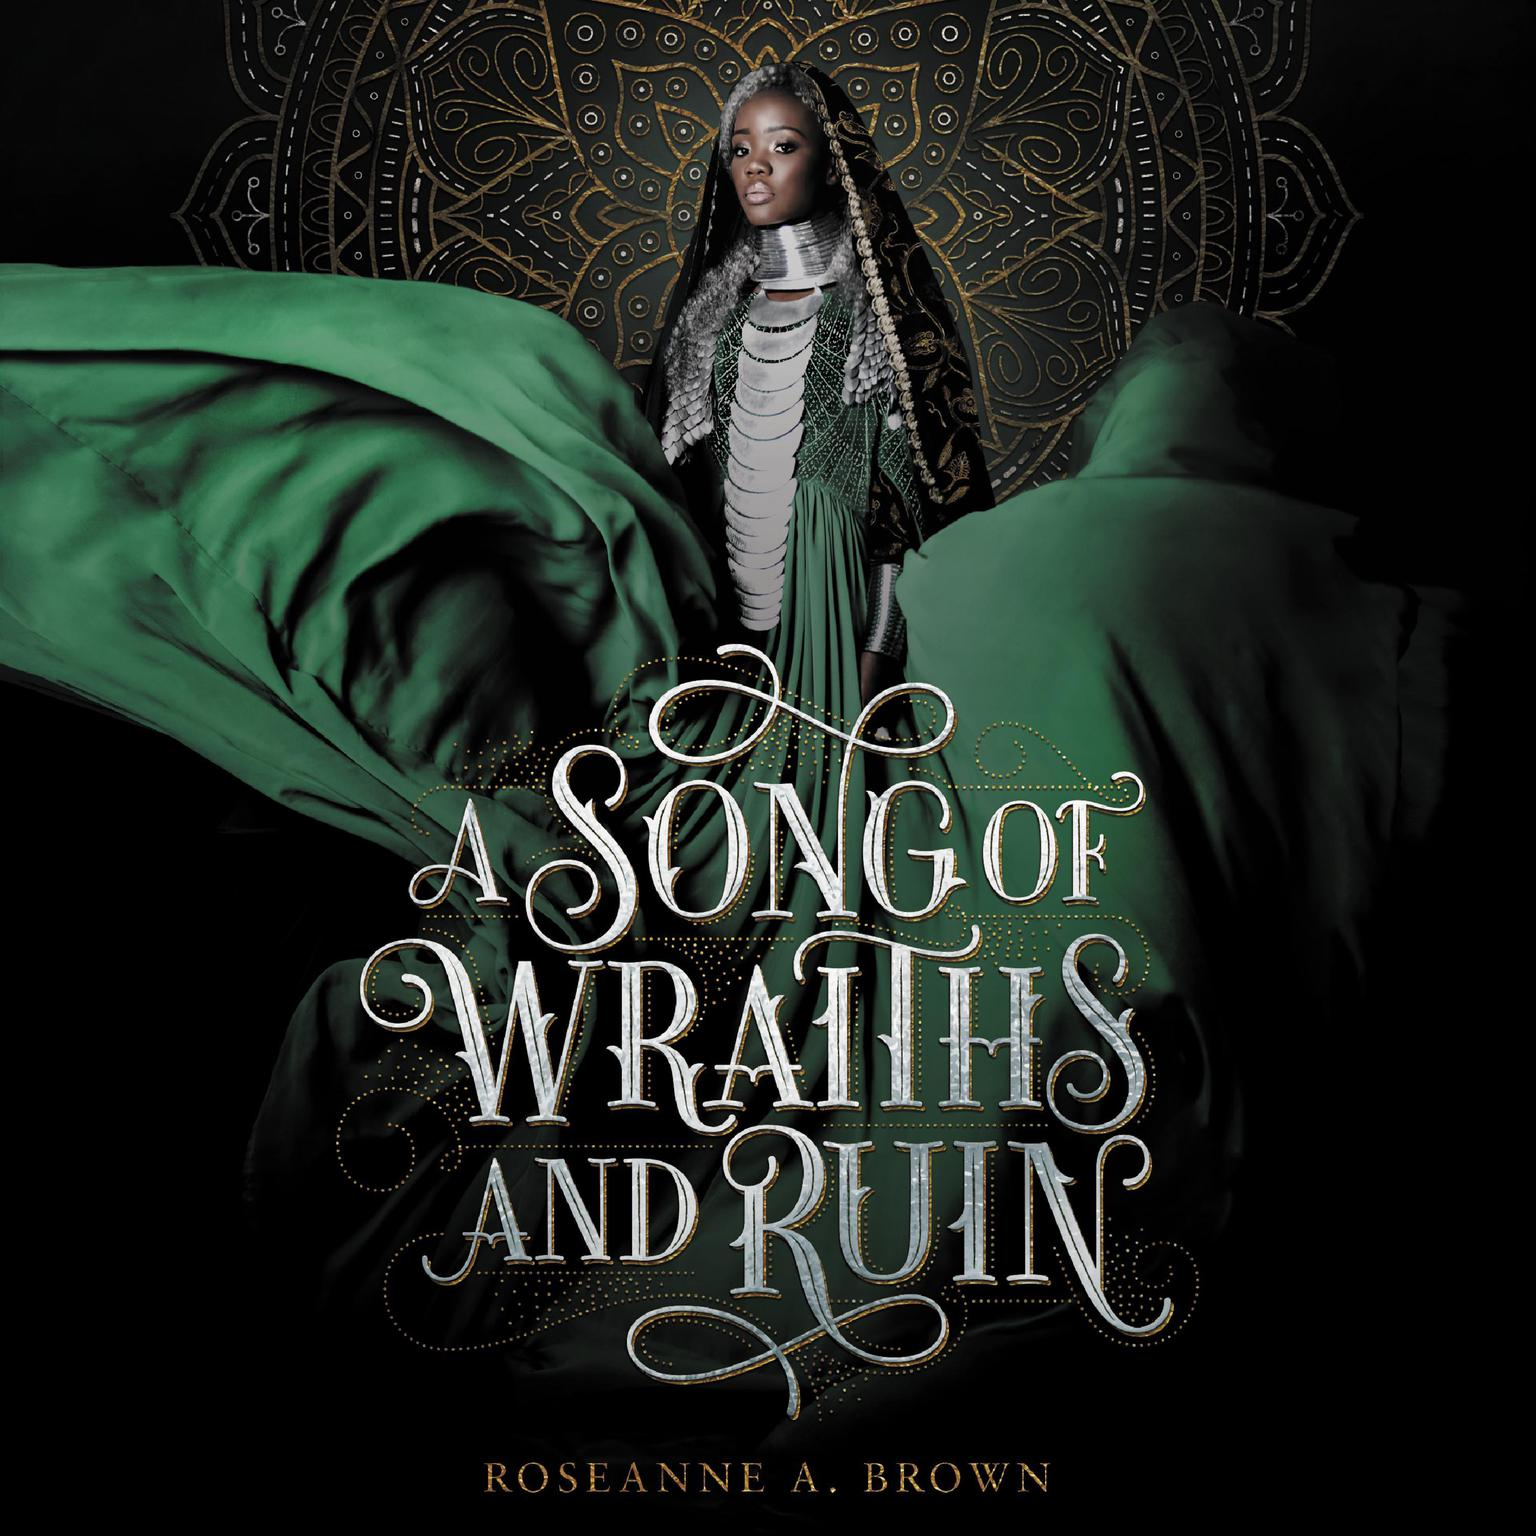 Printable A Song of Wraiths and Ruin Audiobook Cover Art